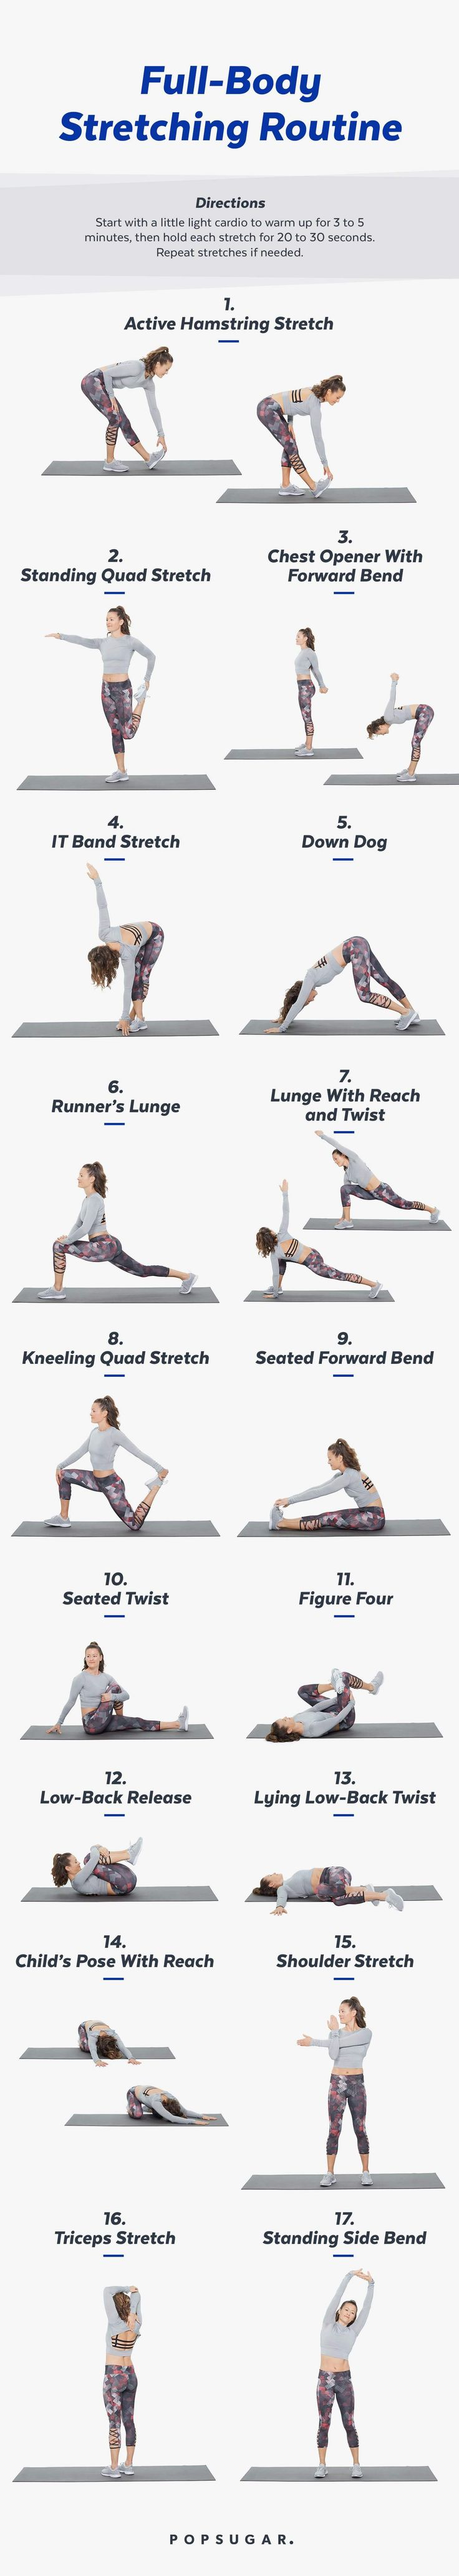 Stay Flexible and Stretch Yourself | 9 Printable At-Home Workouts You Need in Your Life | POPSUGAR Fitness